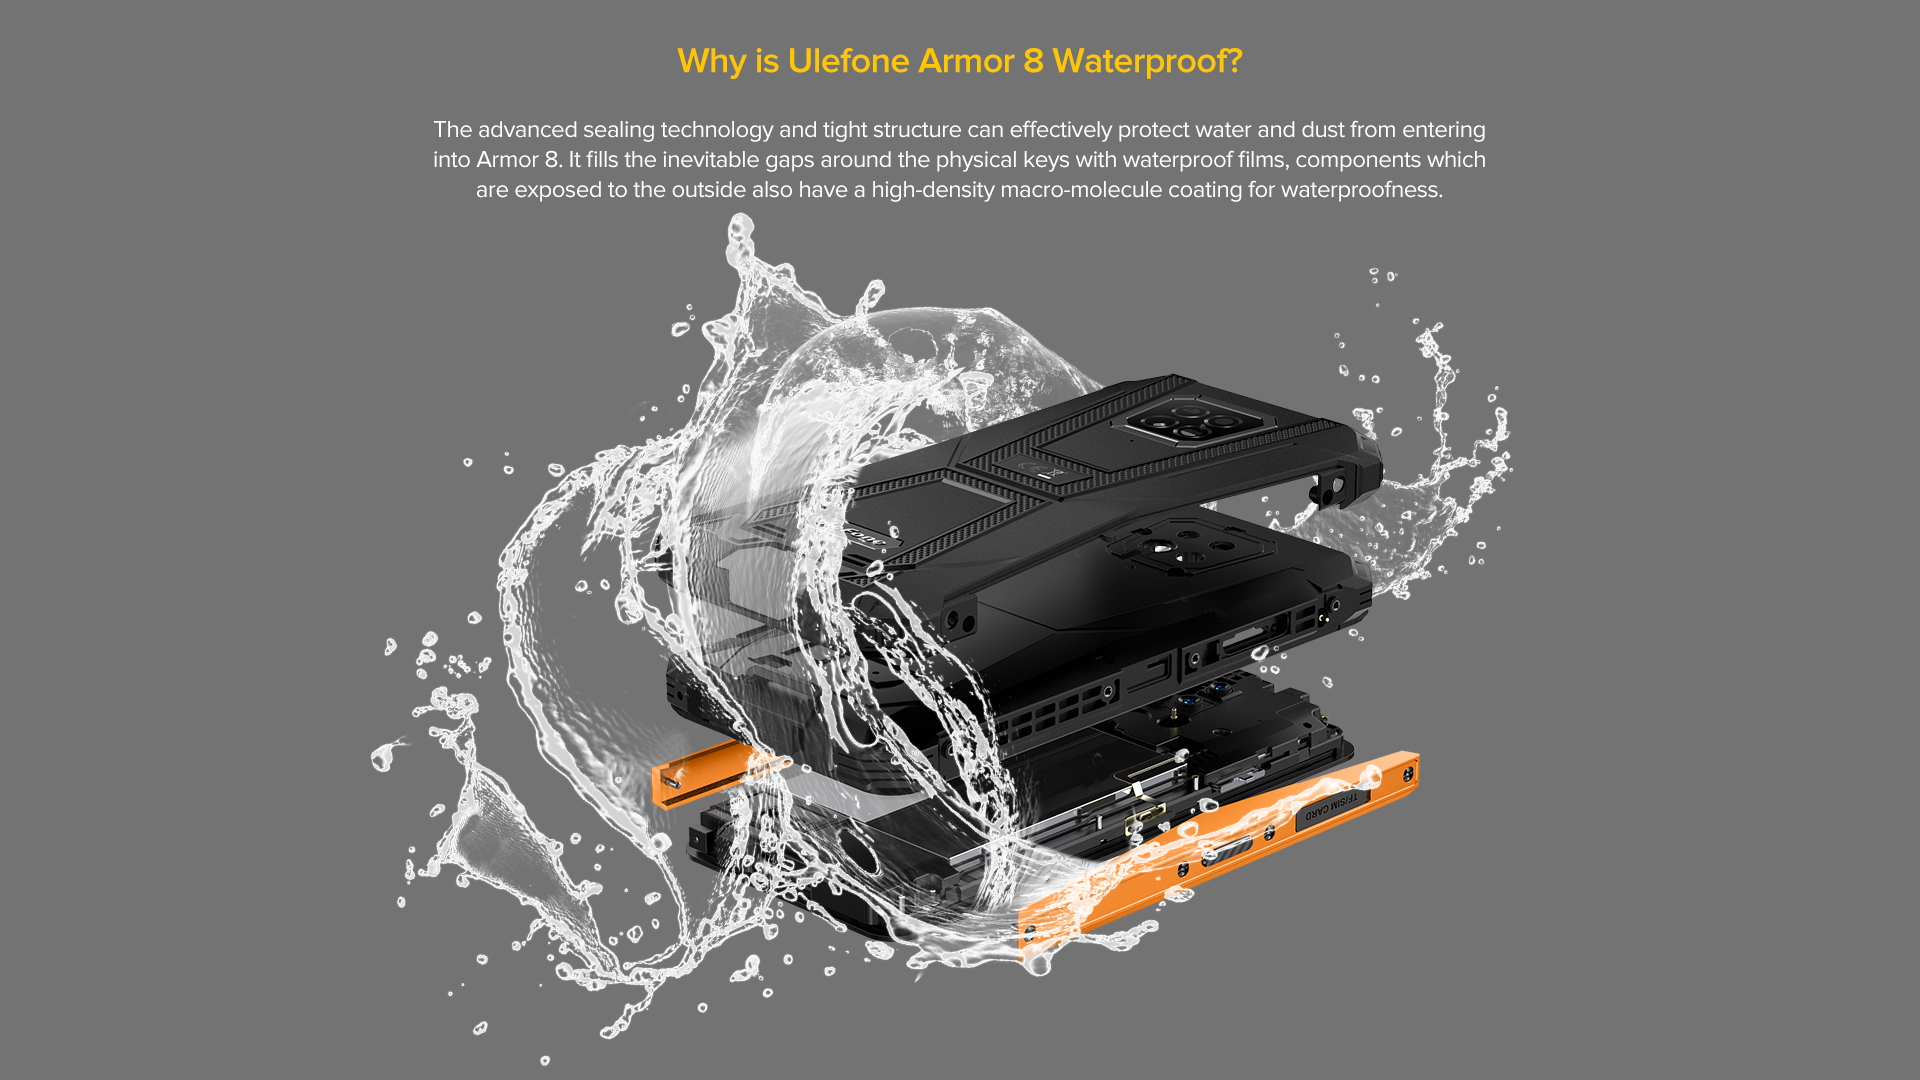 Ulefone armor 8 rugged phone